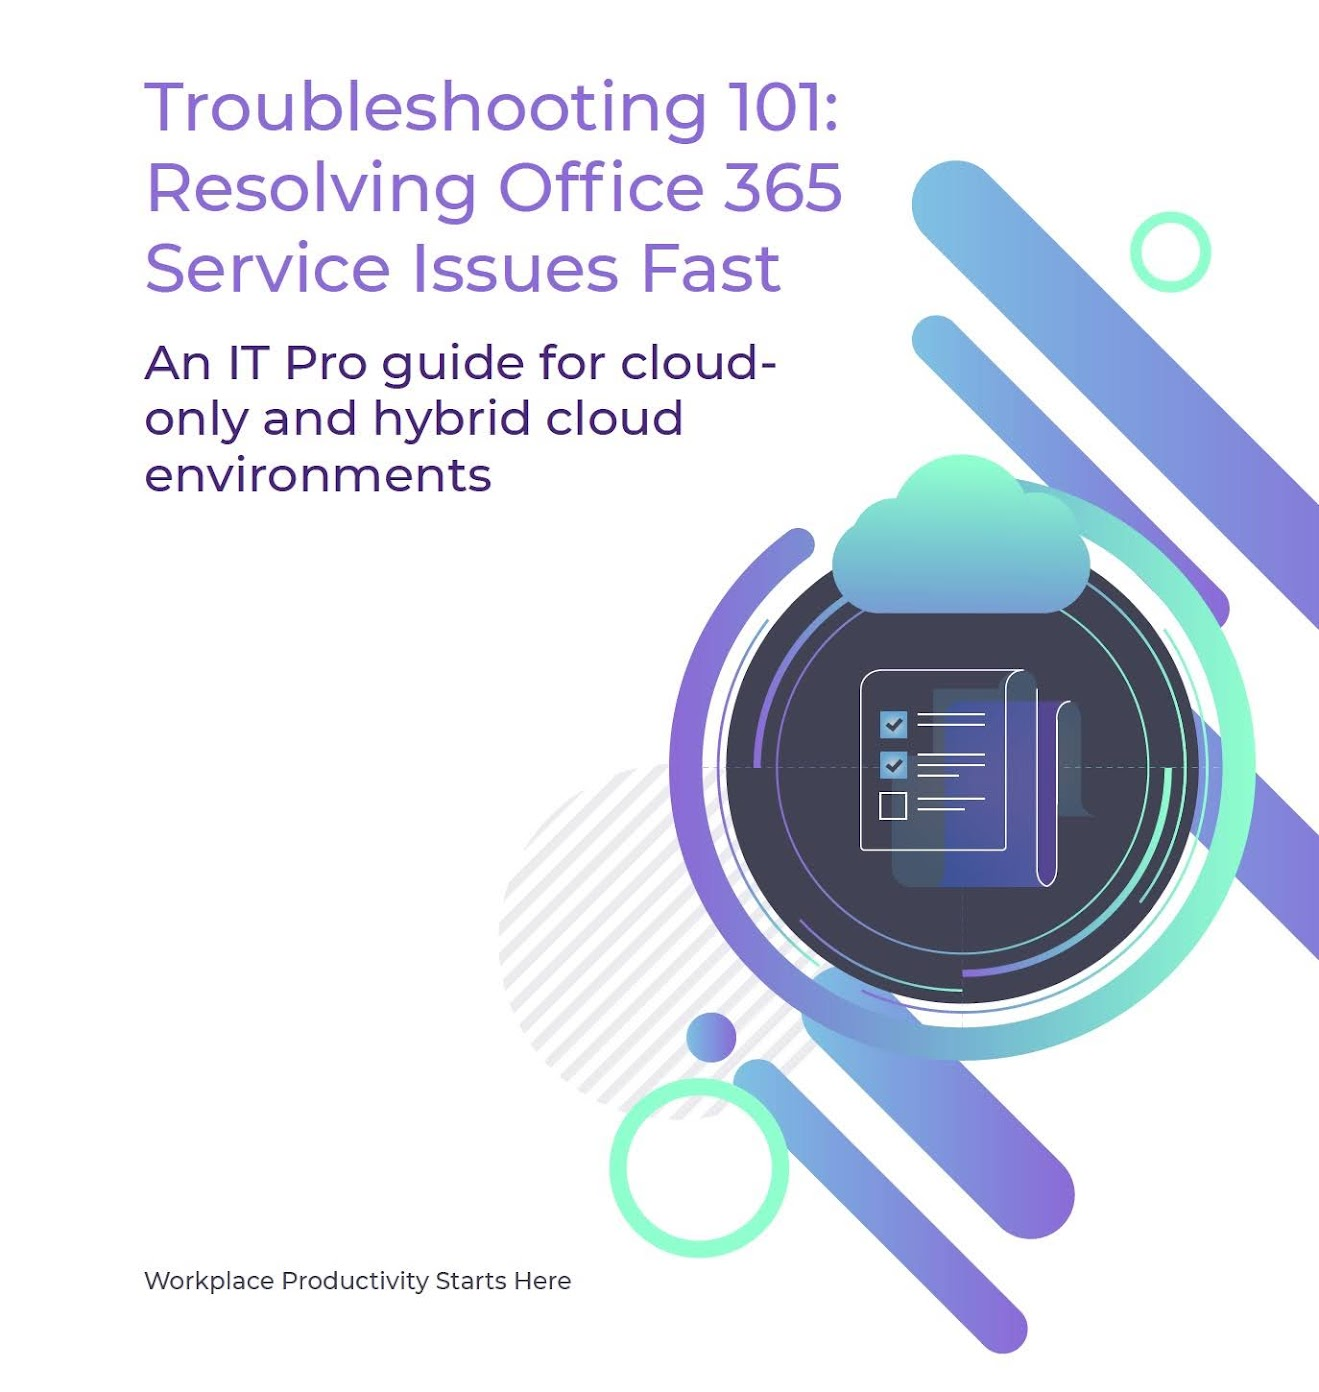 Troubleshooting for IT Pros: Resolve Office 365 Service Issues Fast